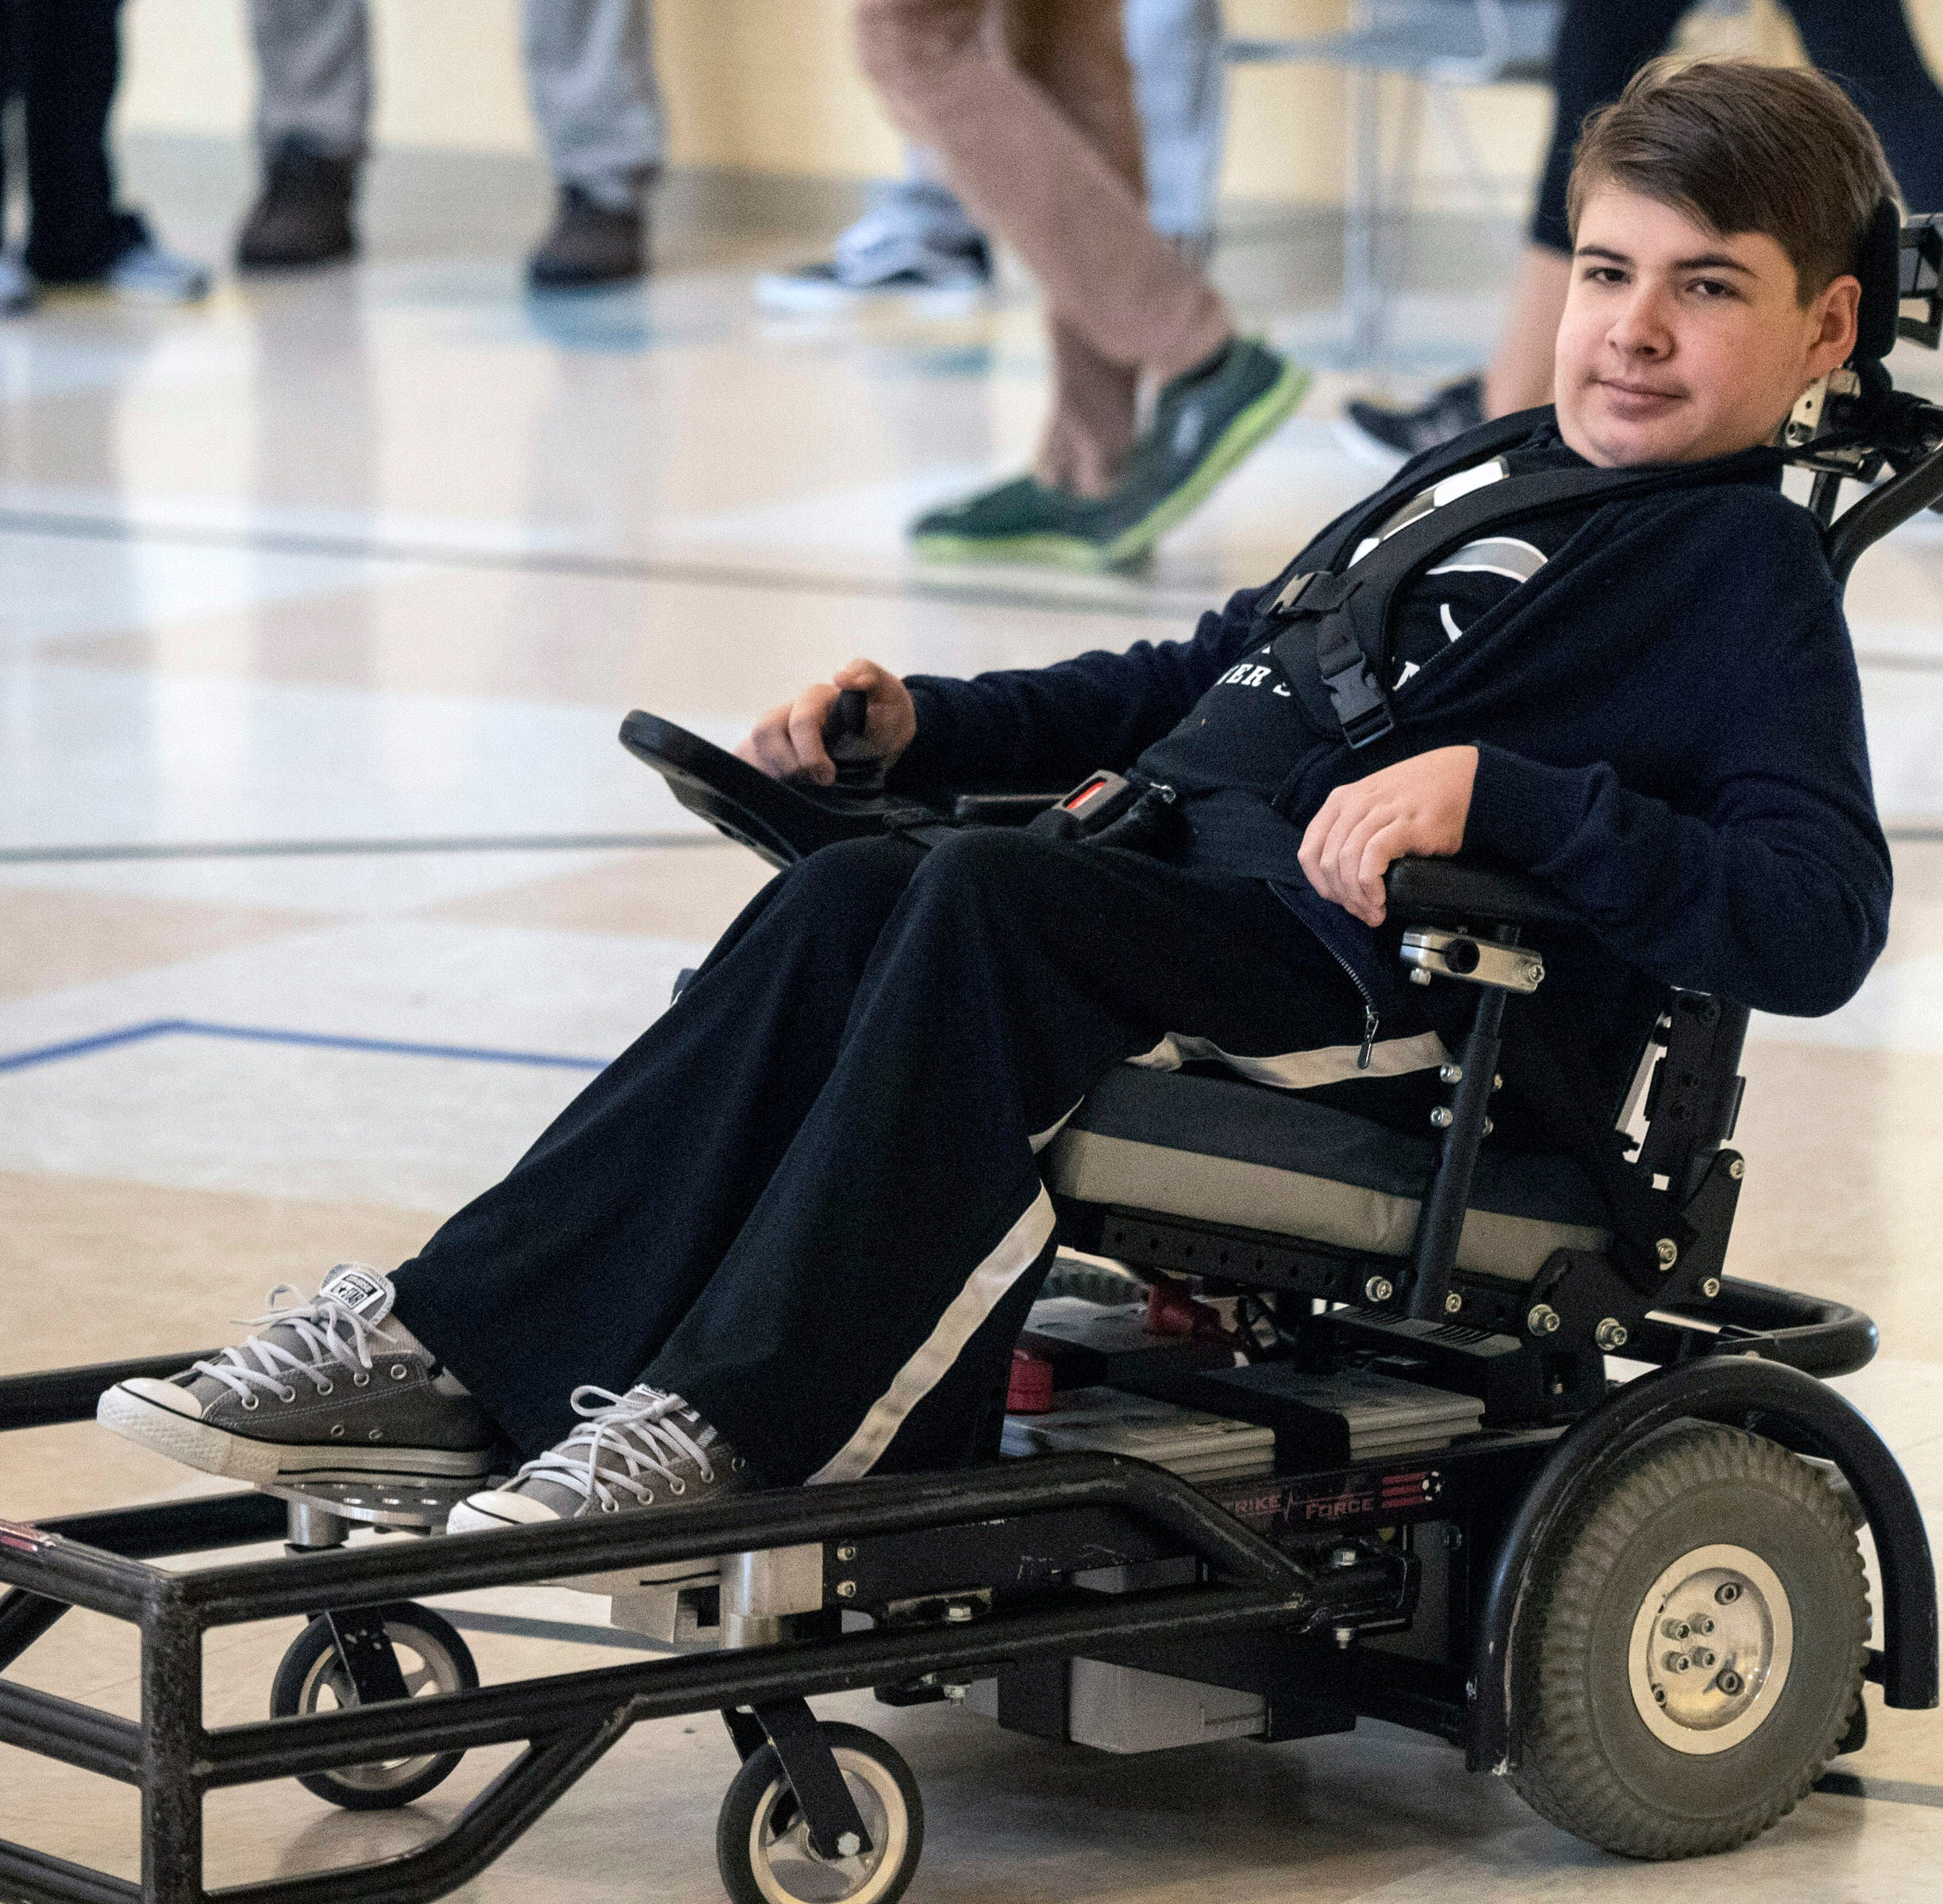 Power wheelchair soccer team is taking off with help of Louisville City FC